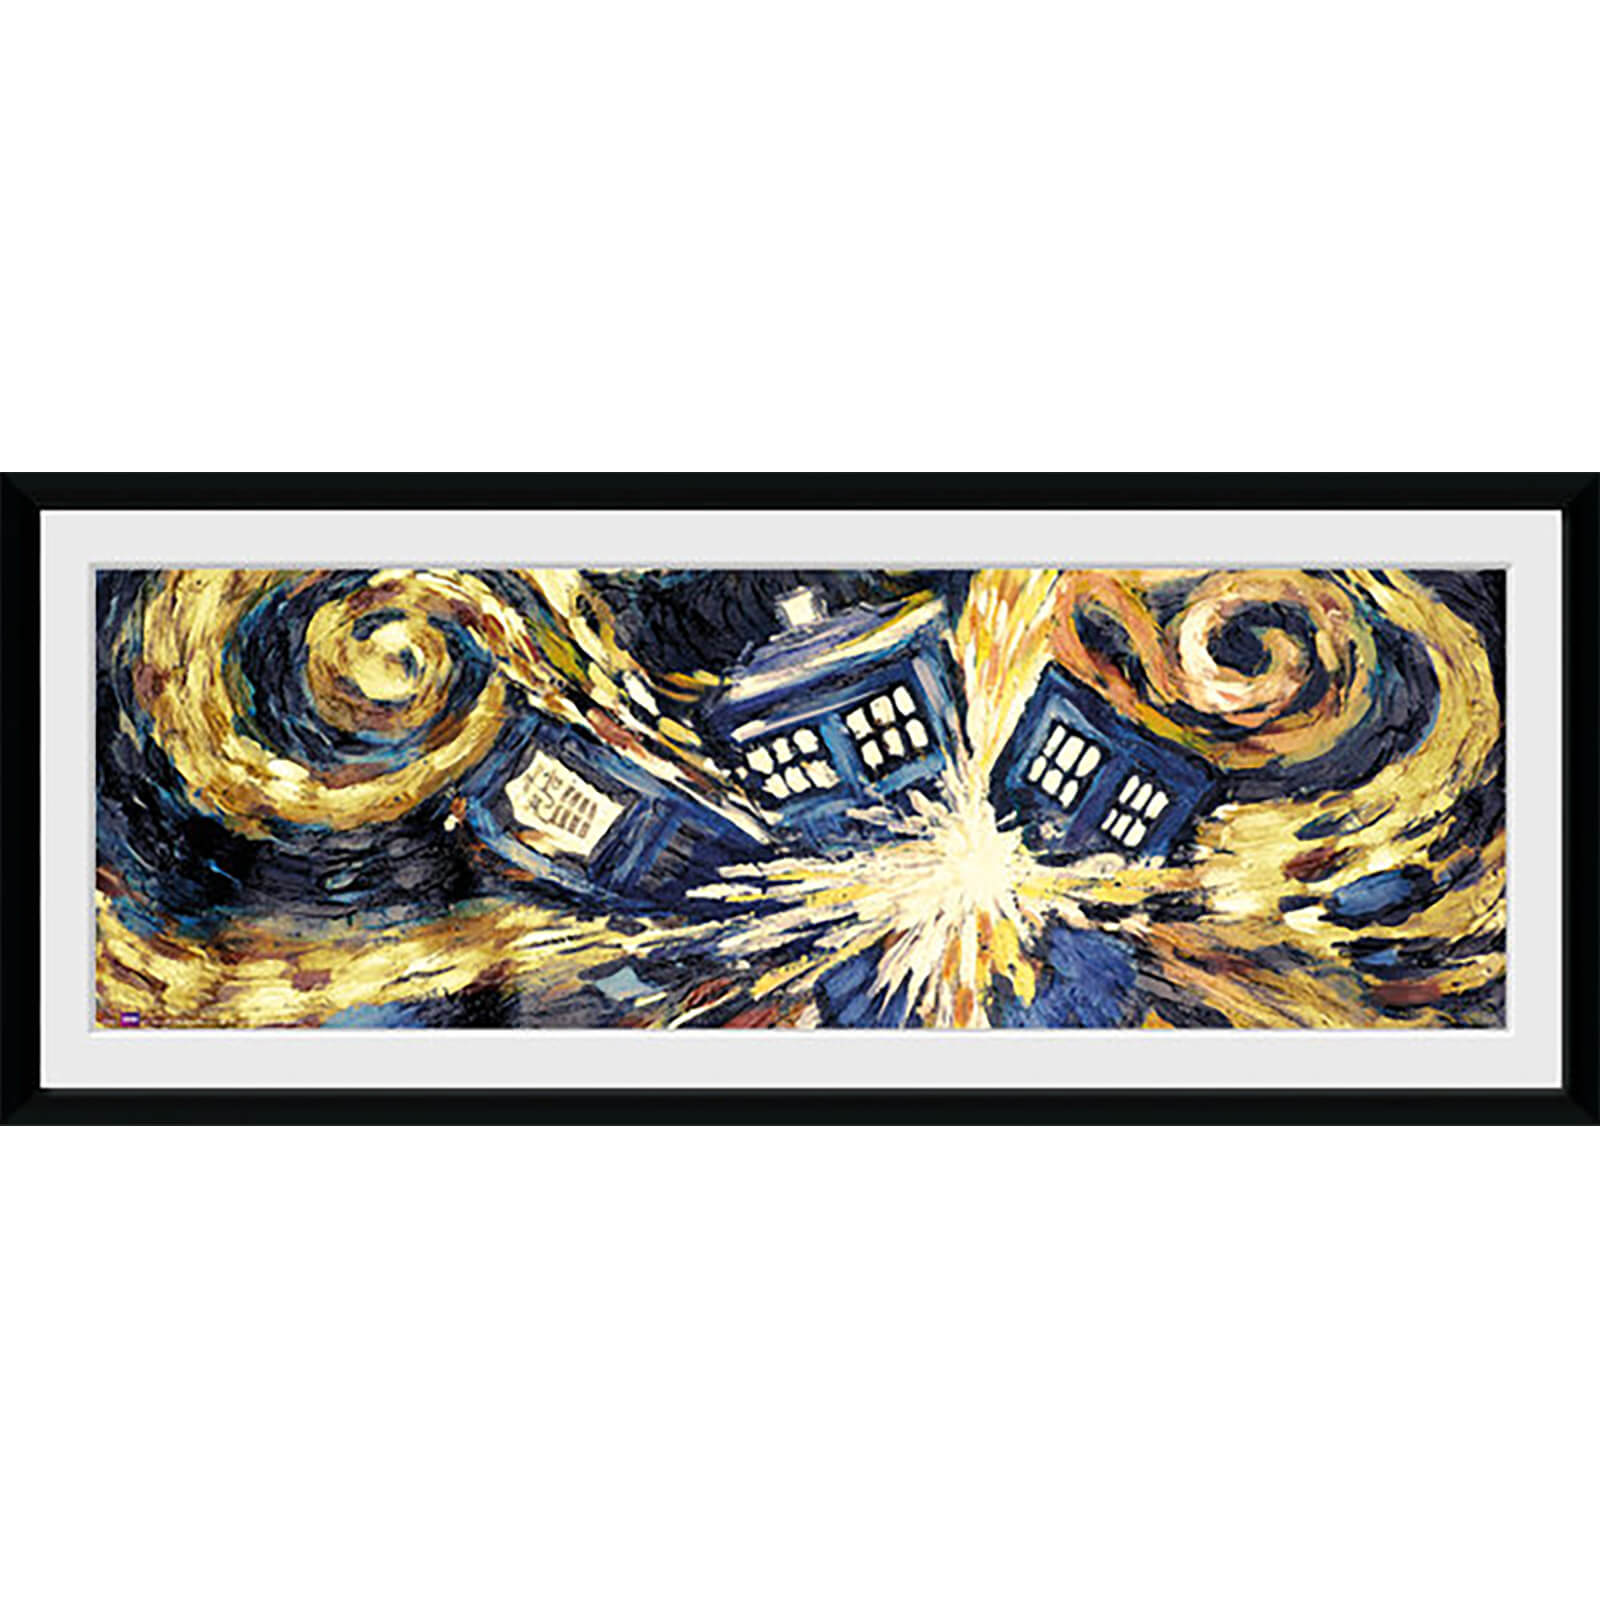 Doctor Who Exploding Tardis - 30 x 12 Inches Framed Photograph